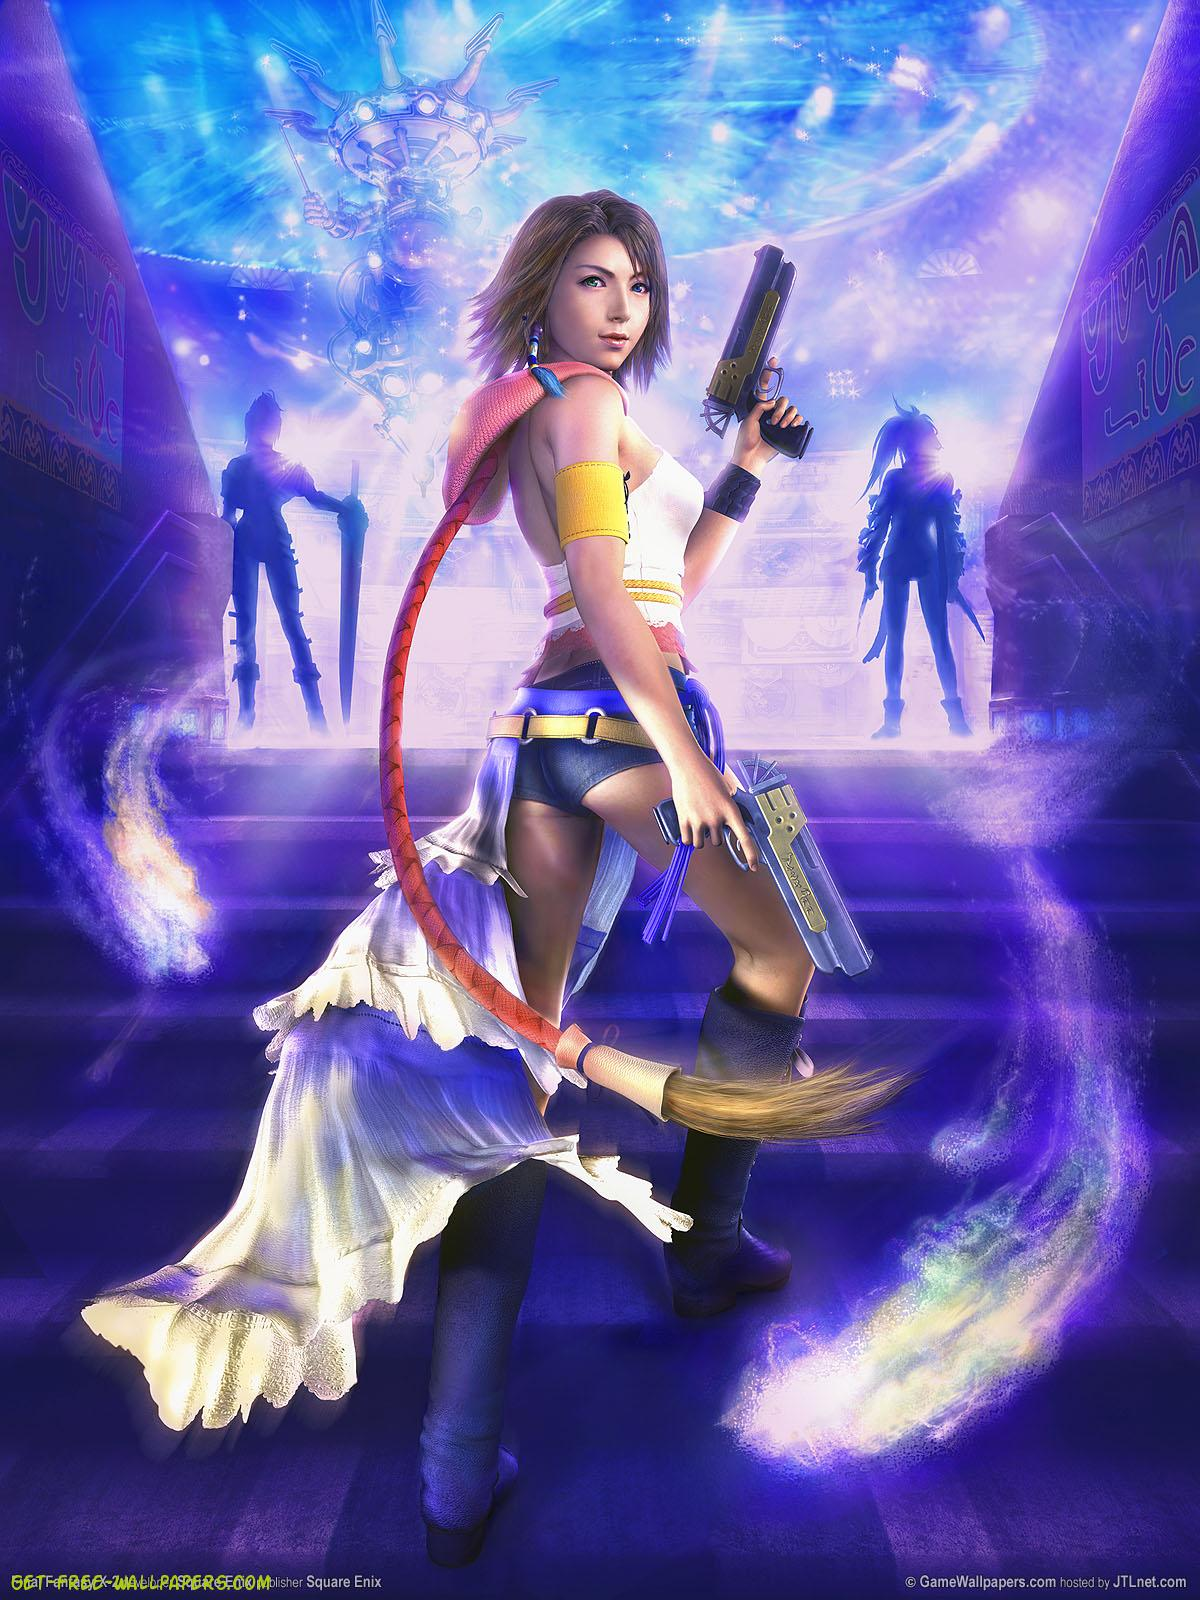 Download Final Fantasy Wallpaper 1200x1600